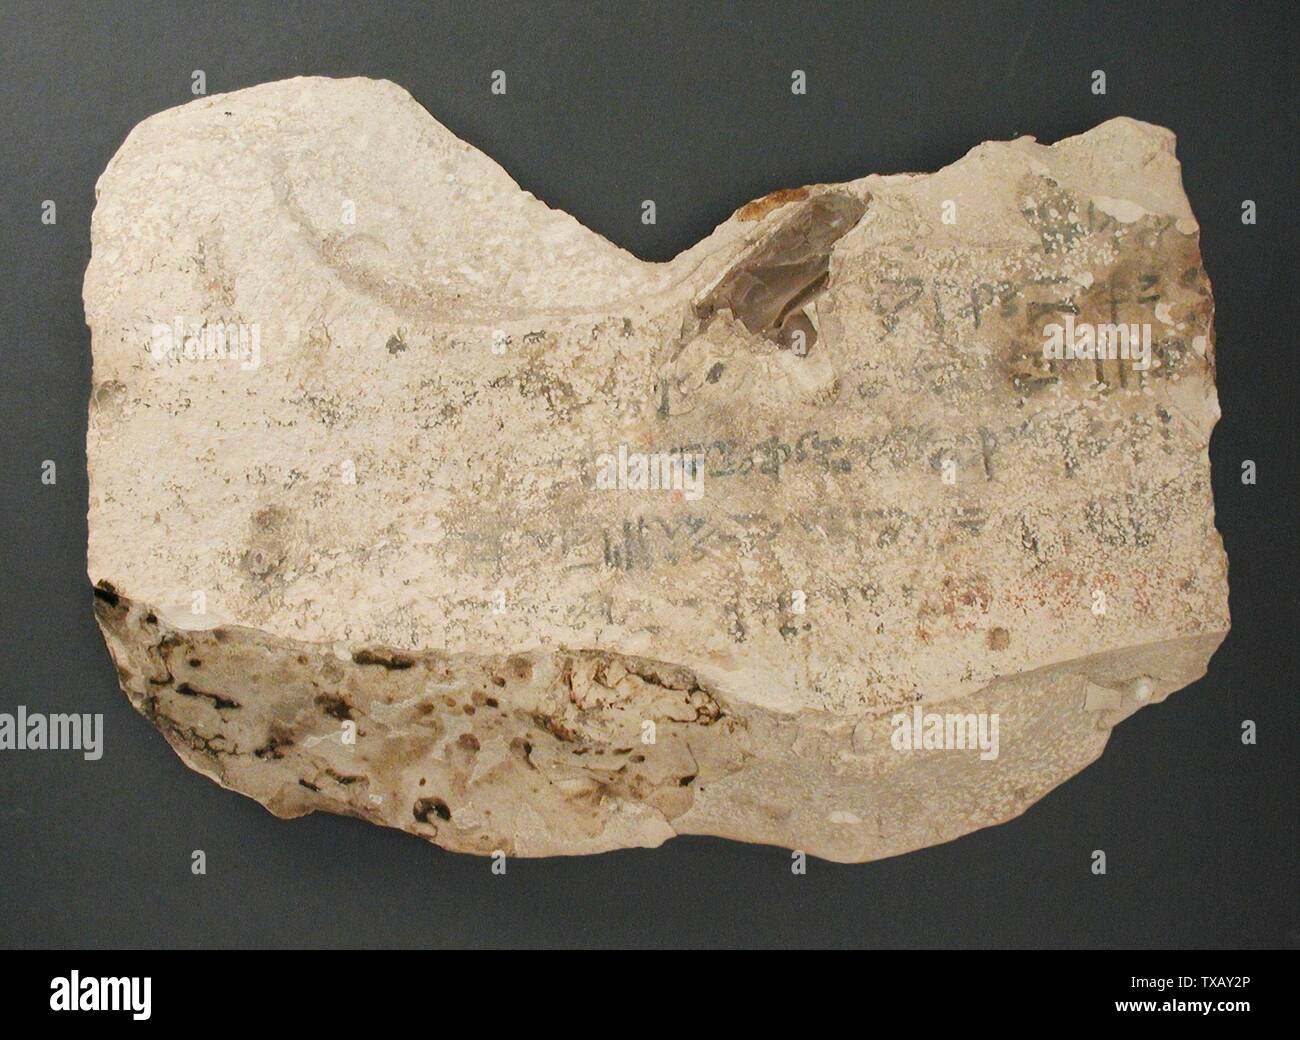 'Ostracon in Three Fragments with Practice Inscriptions of a Hieratic Bird Sign on the Recto and a Hieratic Wisdom Text on the Verso; Egypt, New Kingdom, 18th - 20th Dynasty (1504 - 1081 BCE) Tools and Equipment; ostraka Limestone a) 7 1/2 x 11 1/16 in.  (19 x 28 cm); b) 4 1/4 x 7 5/16 in. (10.8 x 18.5 cm); c) 5 1/2 x 6 11/16 in.  (14 x 17 cm) Gift of Carl W. Thomas (M.80.203.209a-c) Egyptian Art; 18th - 20th Dynasty (1504 - 1081 BCE); ' - Stock Image